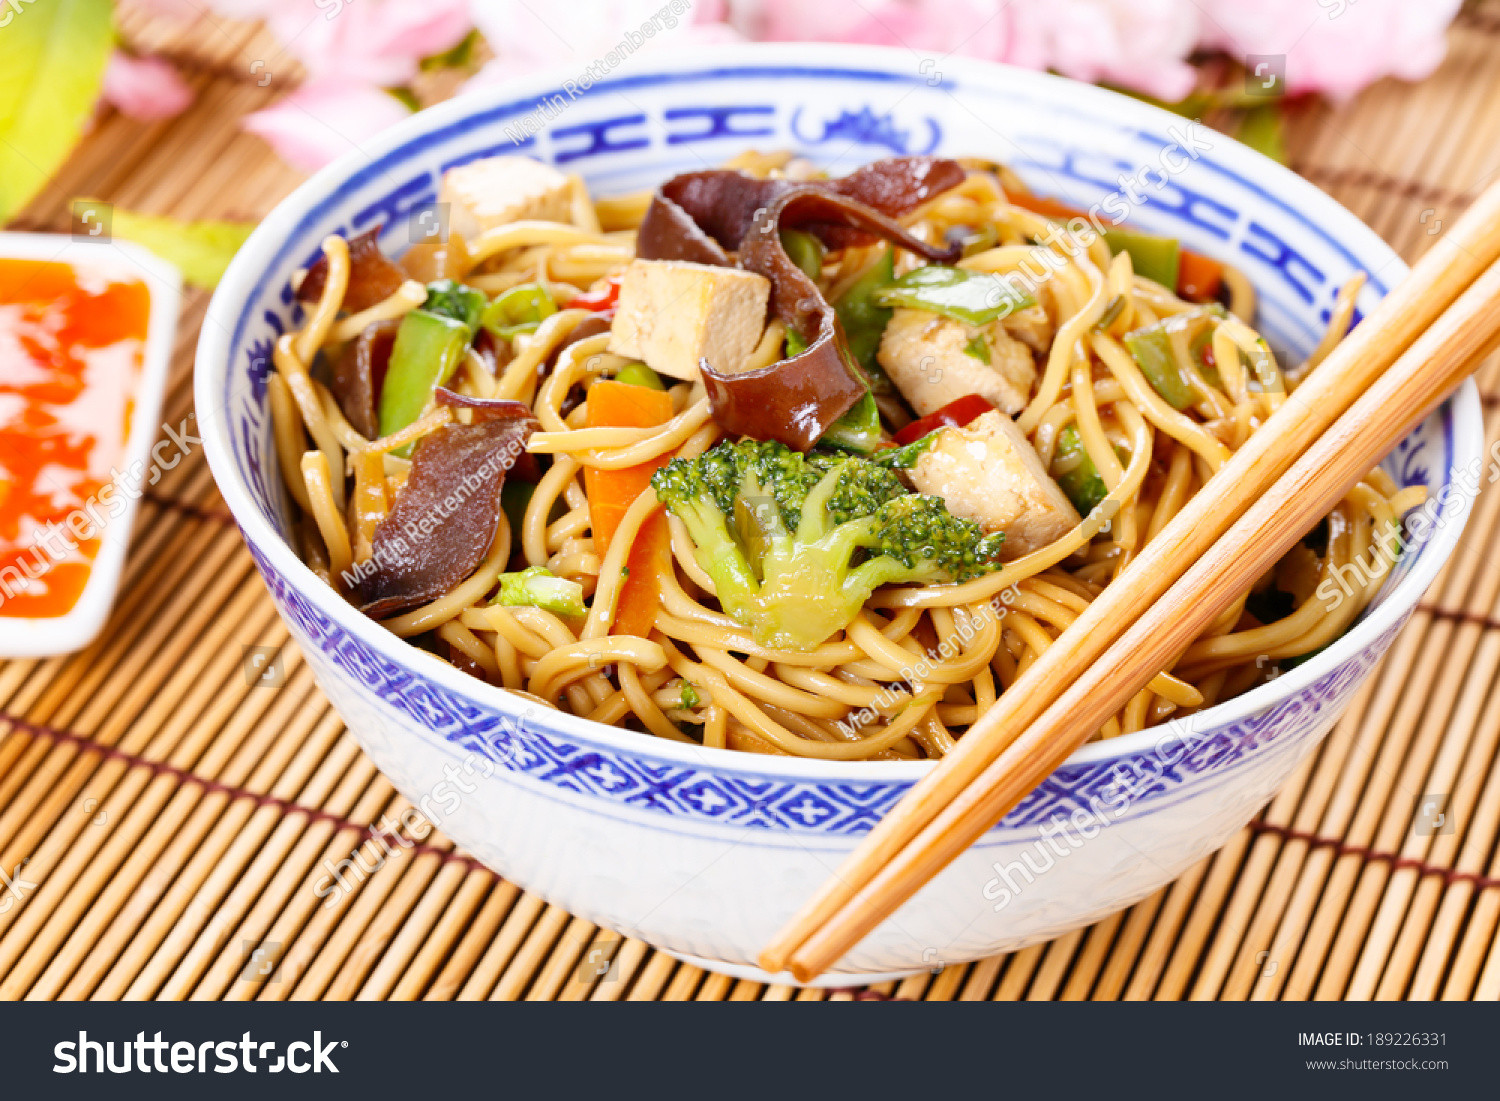 Chow Mein Stir Fry Noodles  Chow Mein Stirfried Noodles Ve ables Stock